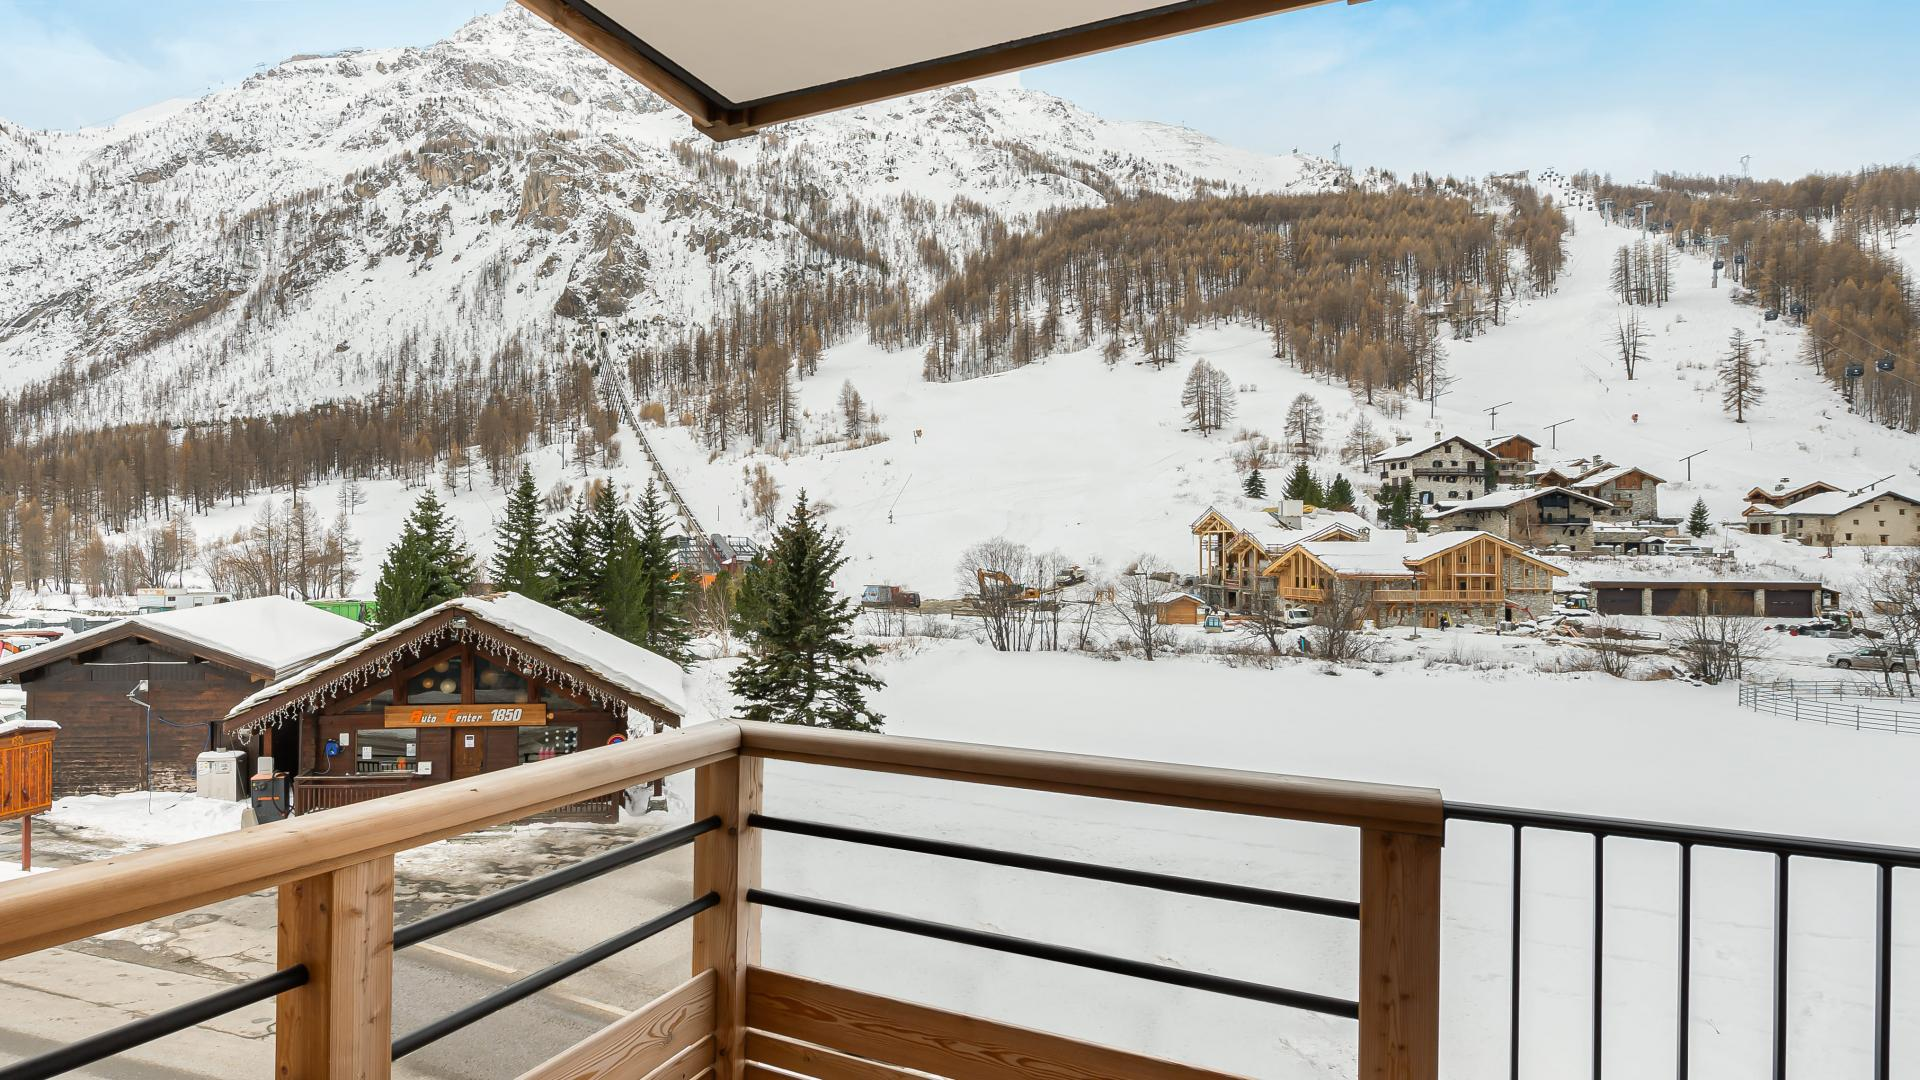 Appartement Ourson 13 - Location chalets Covarel - Val d'Isère Alpes - France - Terrasse